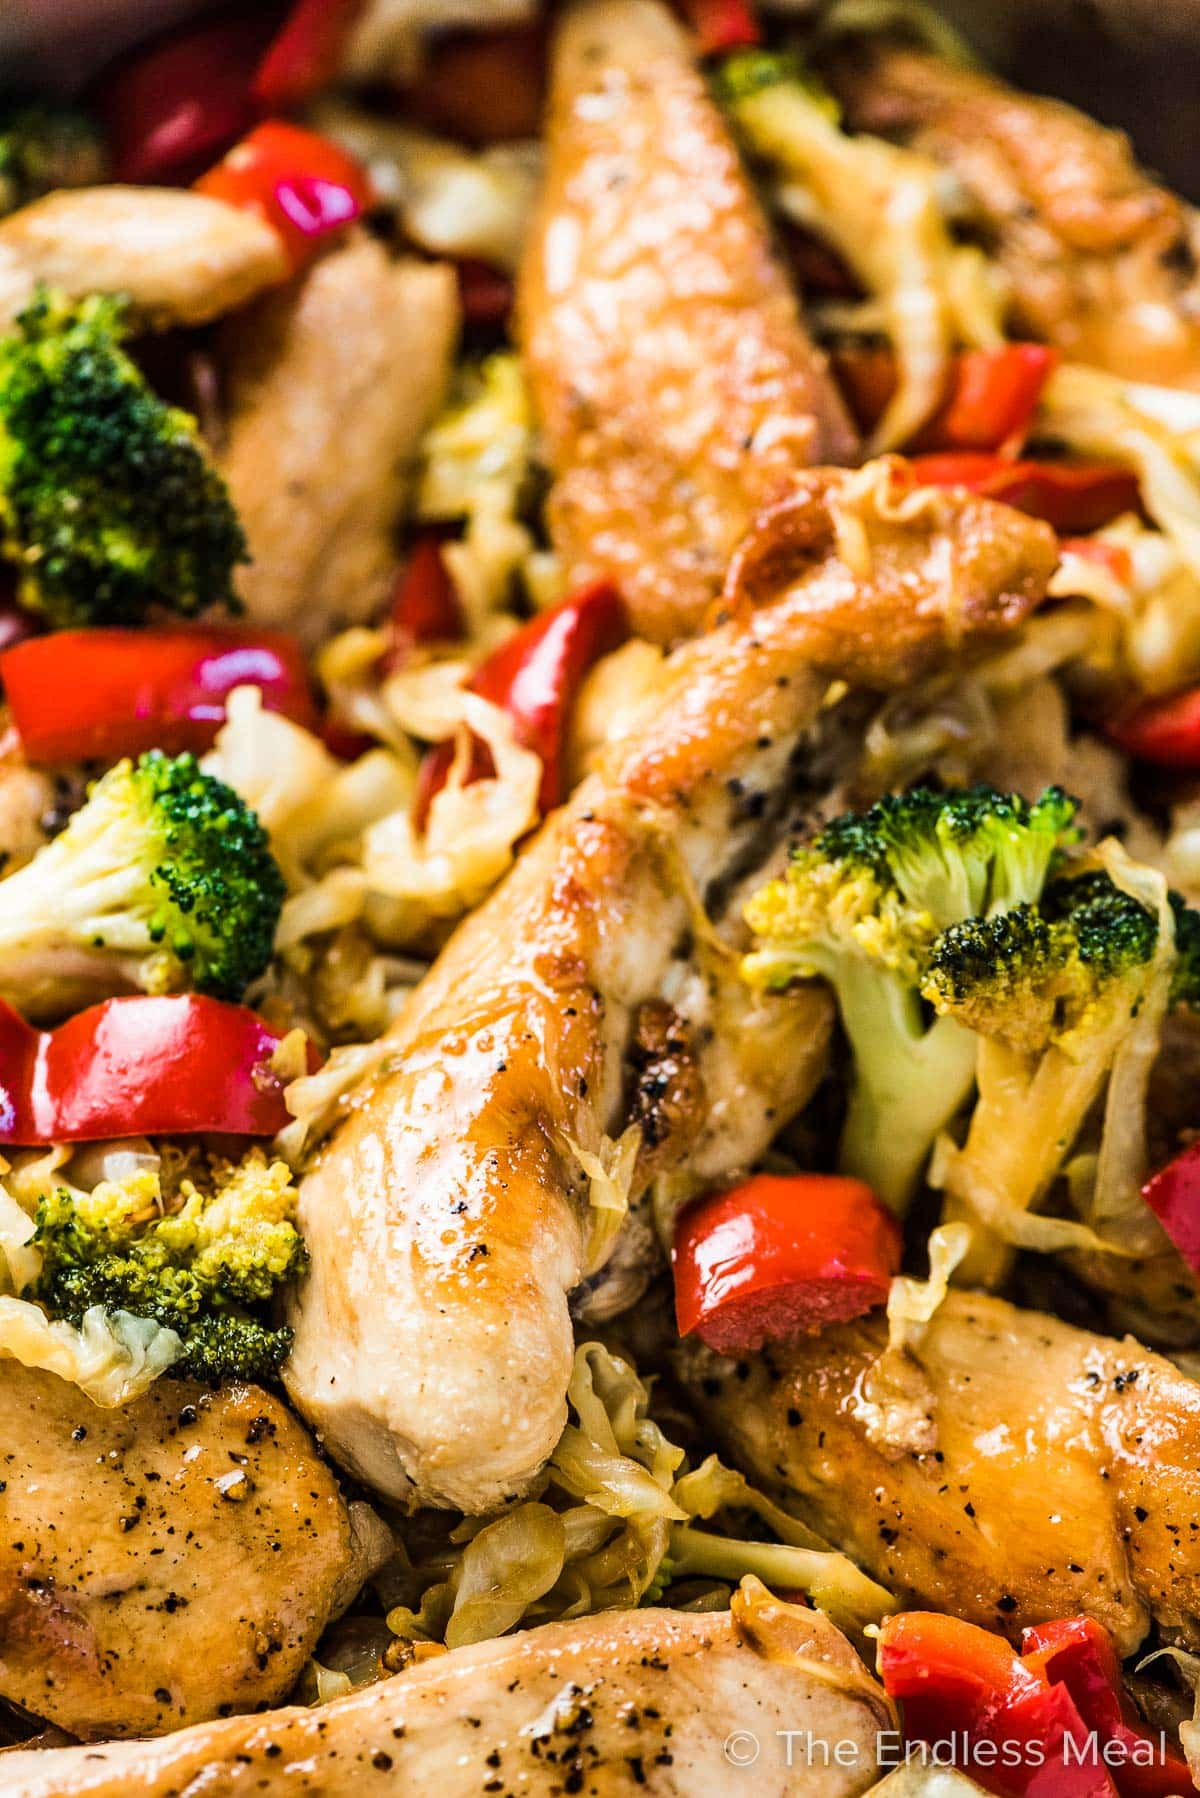 A close up of a piece fo chicken in this cabbage stir fry recipe.